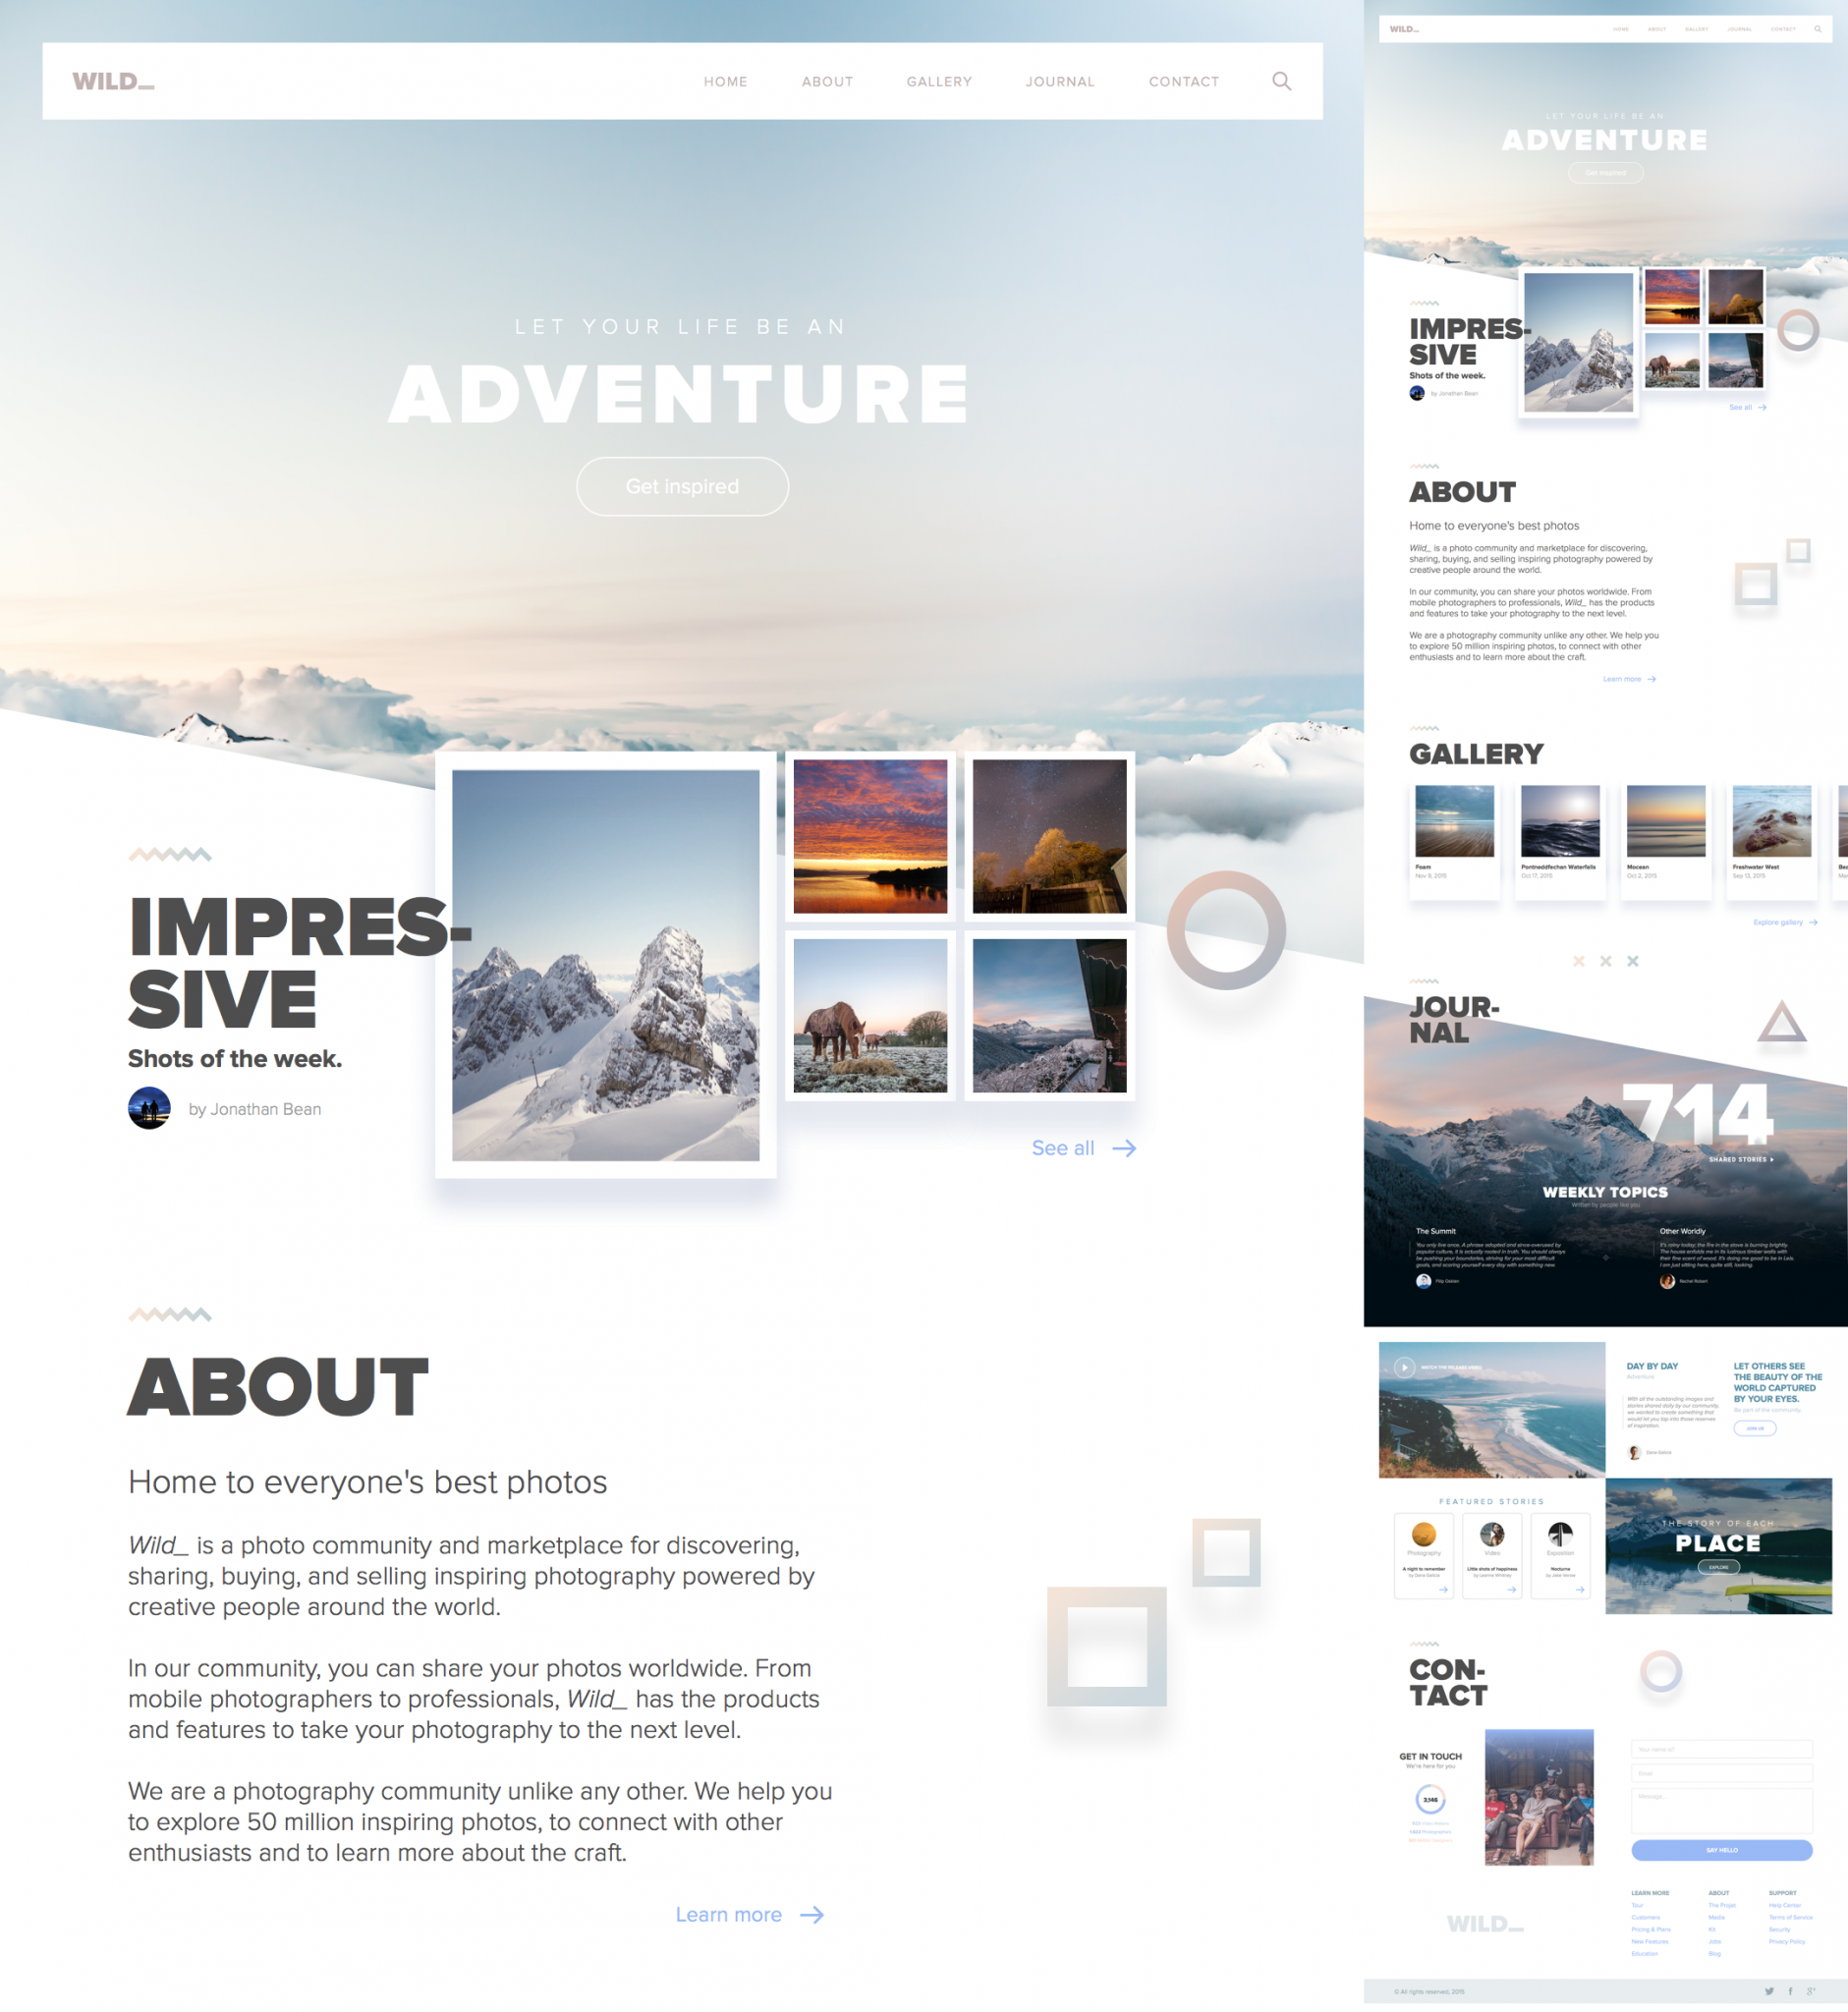 website template for sketch - Journey, Adventure, Wild